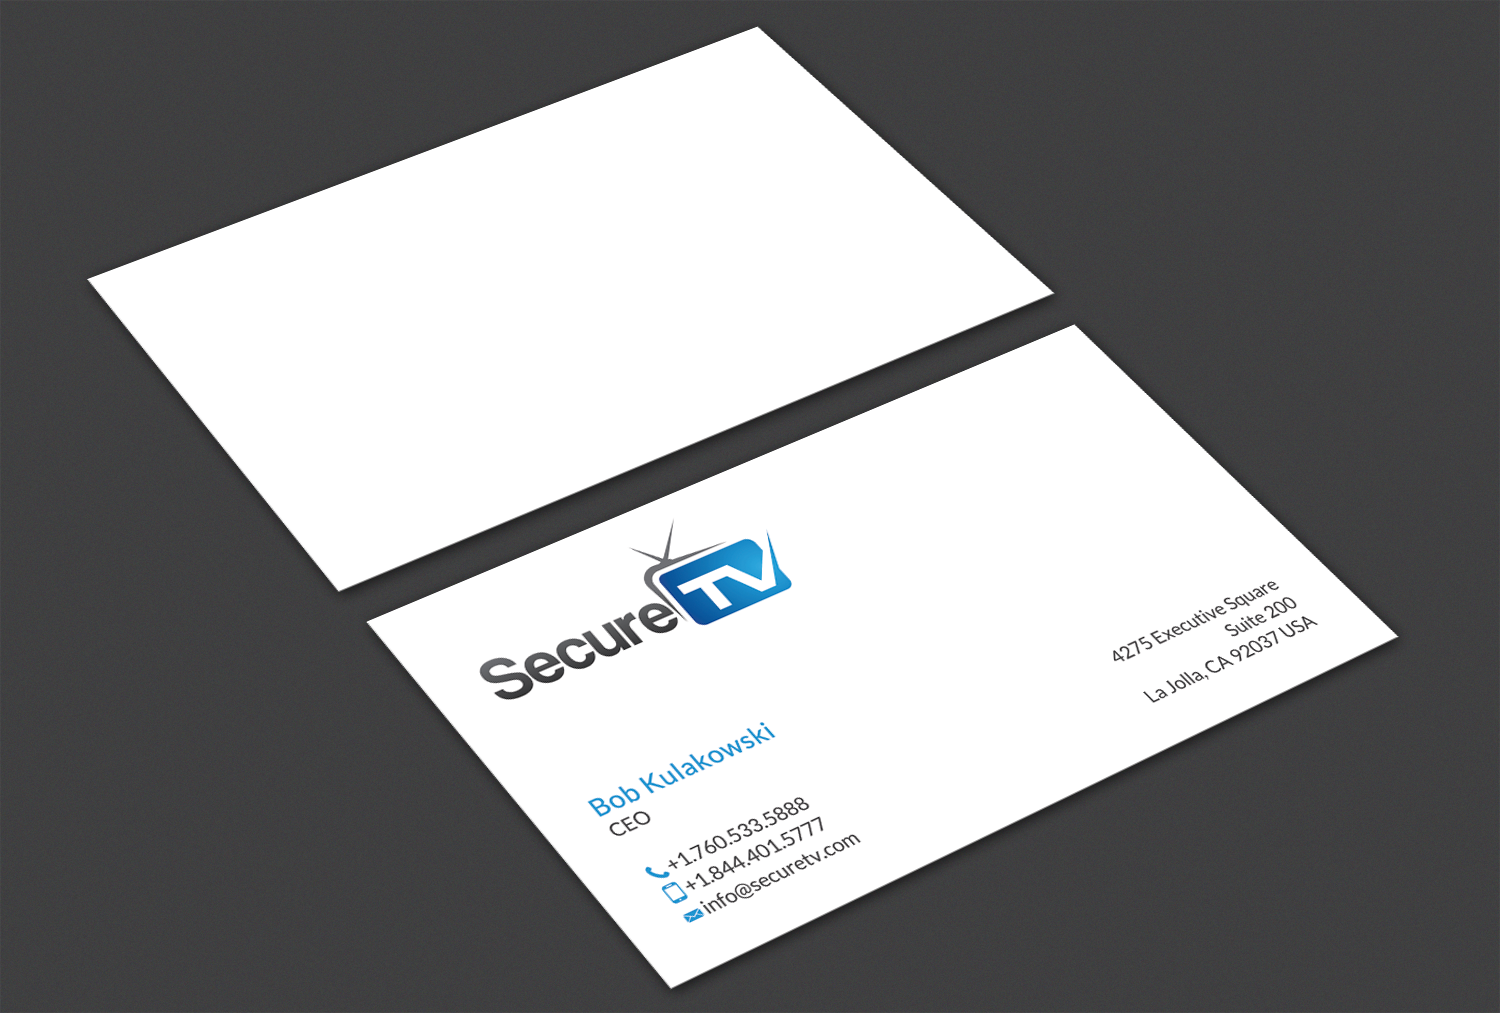 Professional serious cable tv business card design for secure tv business card design by alaminenterprise for secure tv design 12333084 reheart Image collections